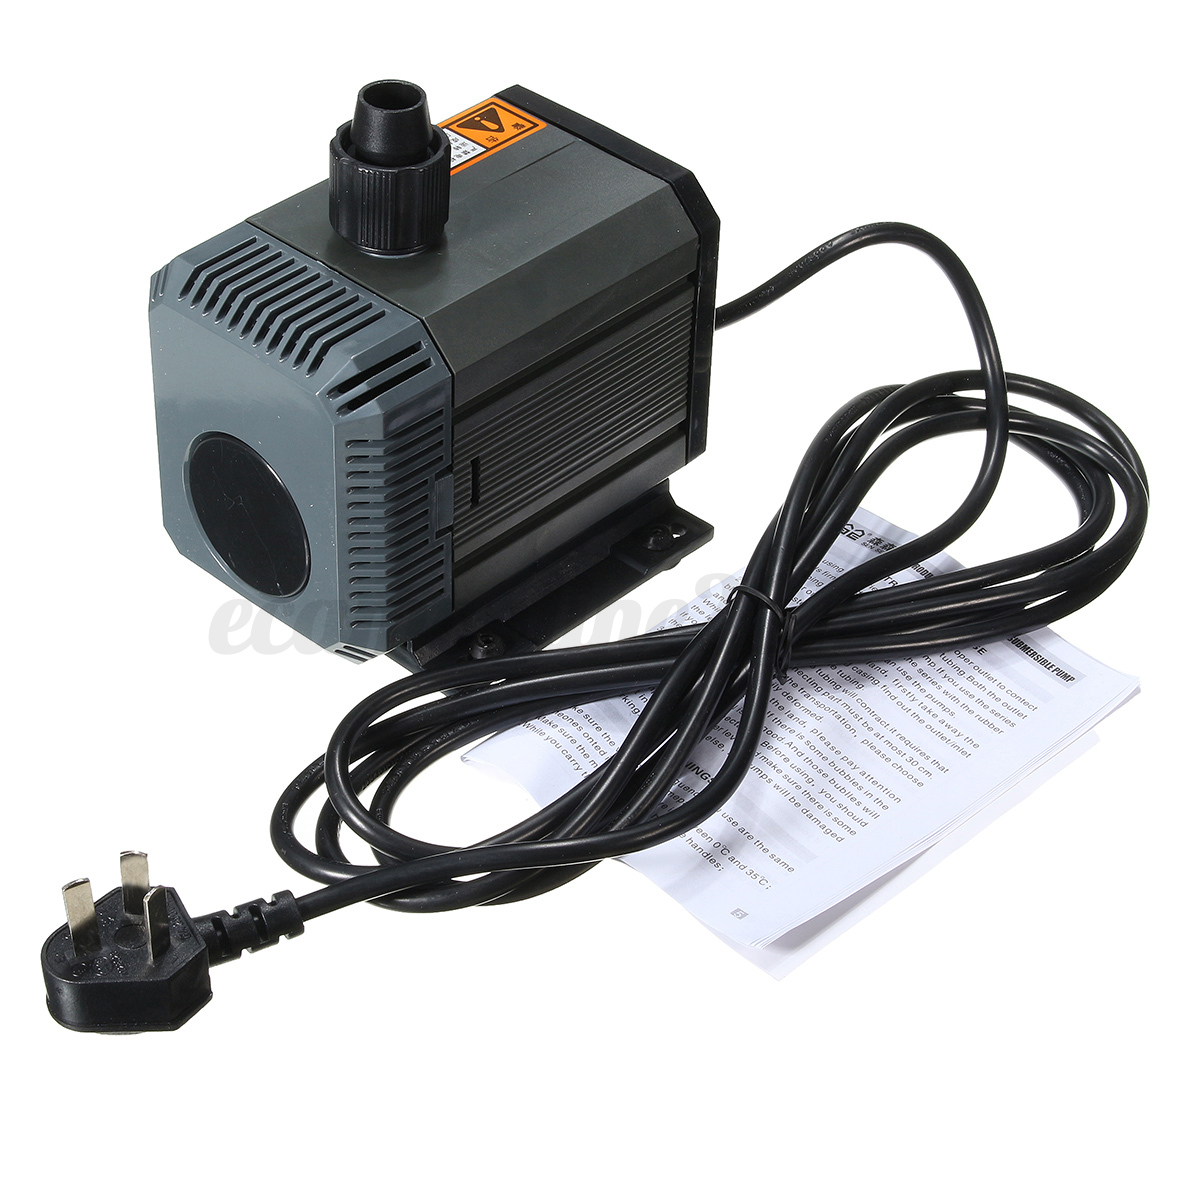 Hqb submersible water pump fish tank aquarium pond pool for Pool pump for koi pond